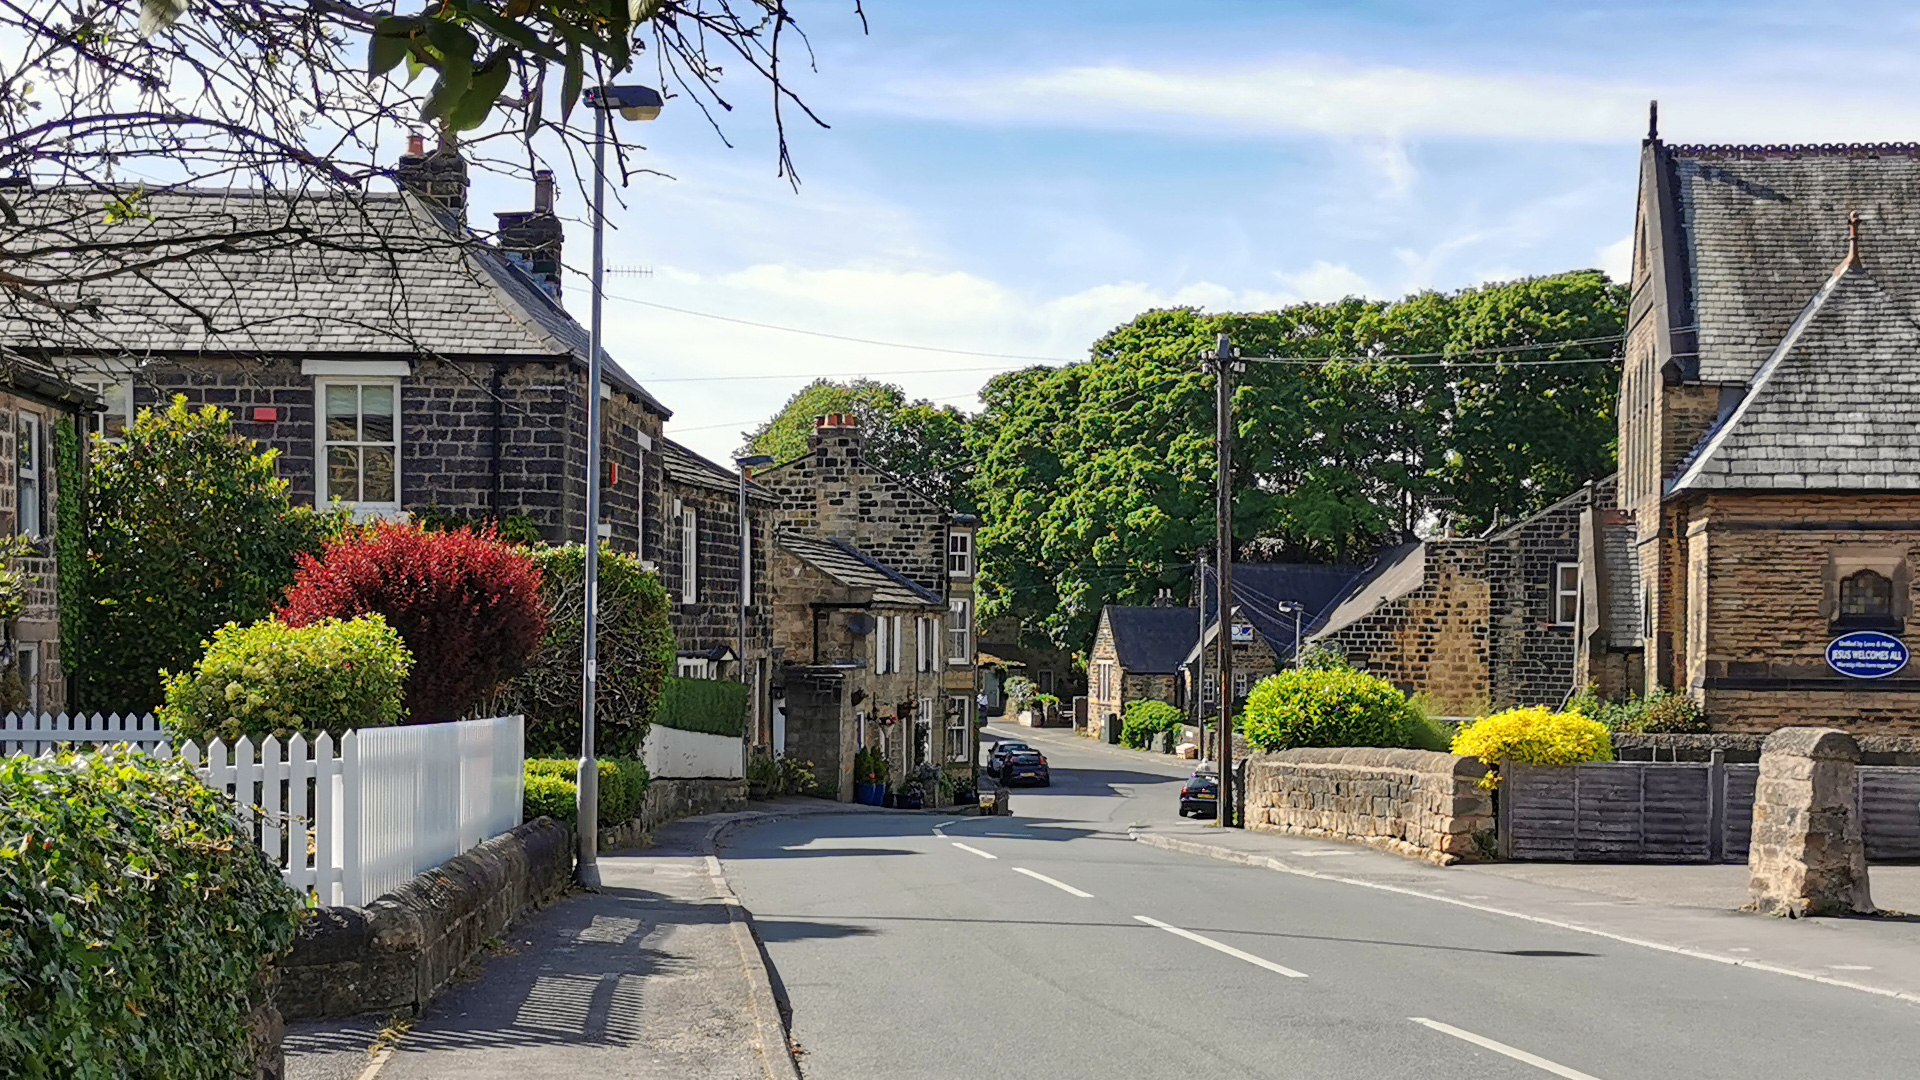 Photograph of Main Street in Menston in West Yorkshire